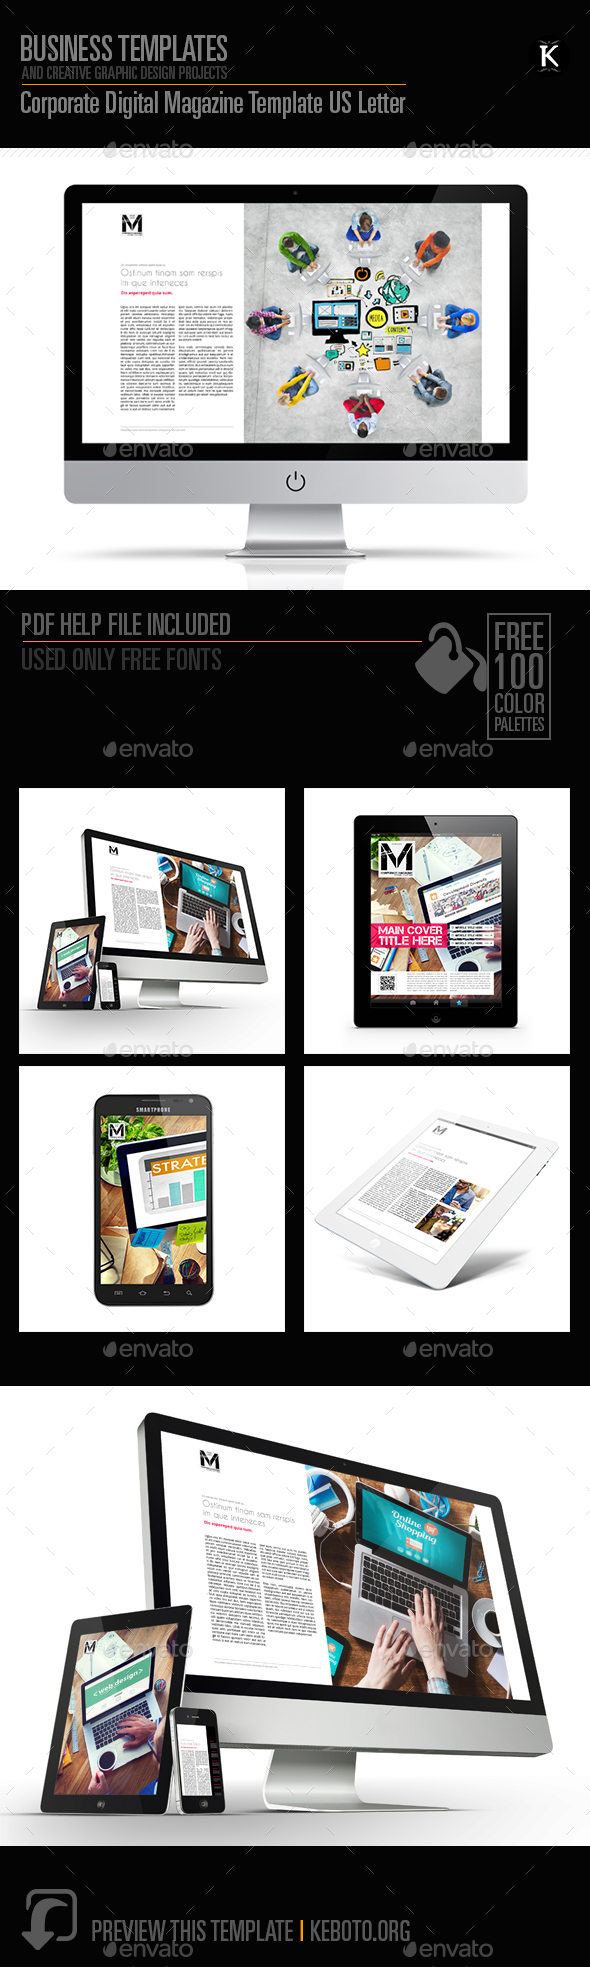 Corporate Digital Magazine Template US Letter - ePublishing